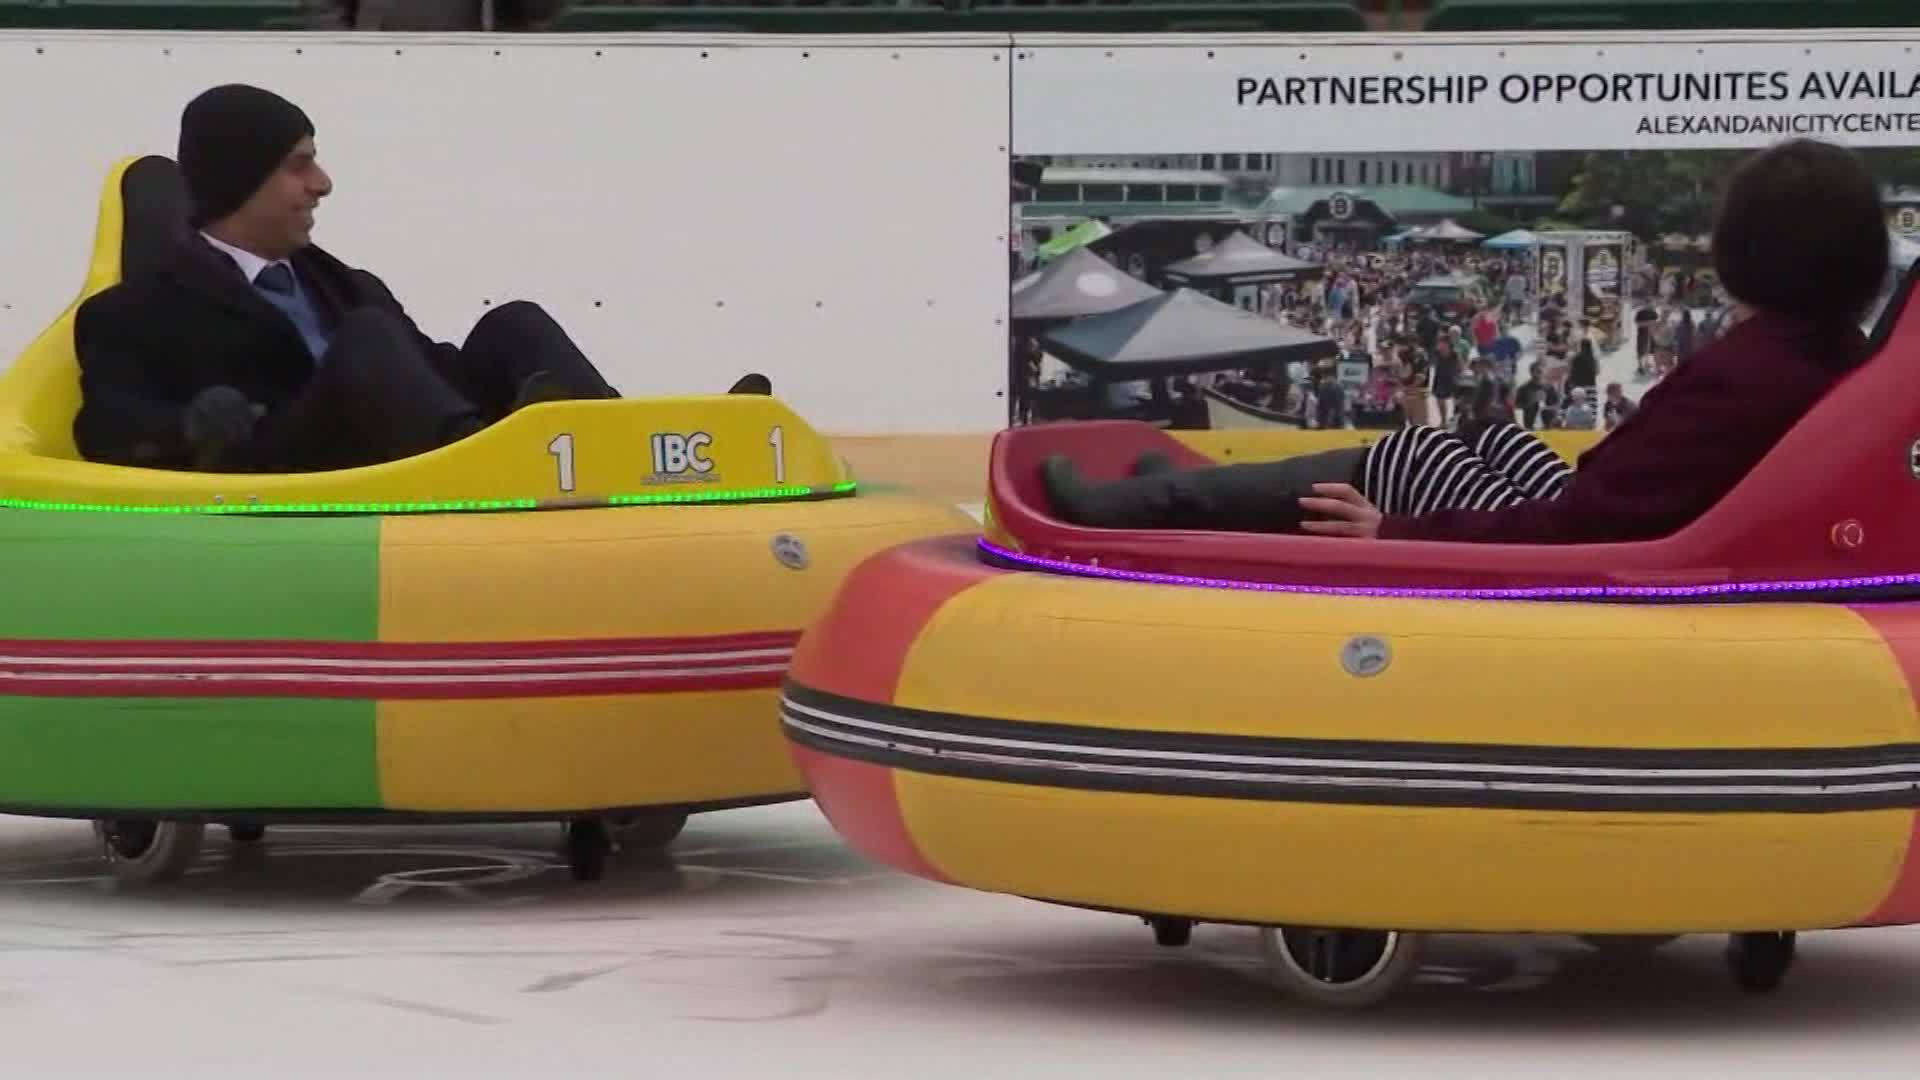 Bumper boats back in action